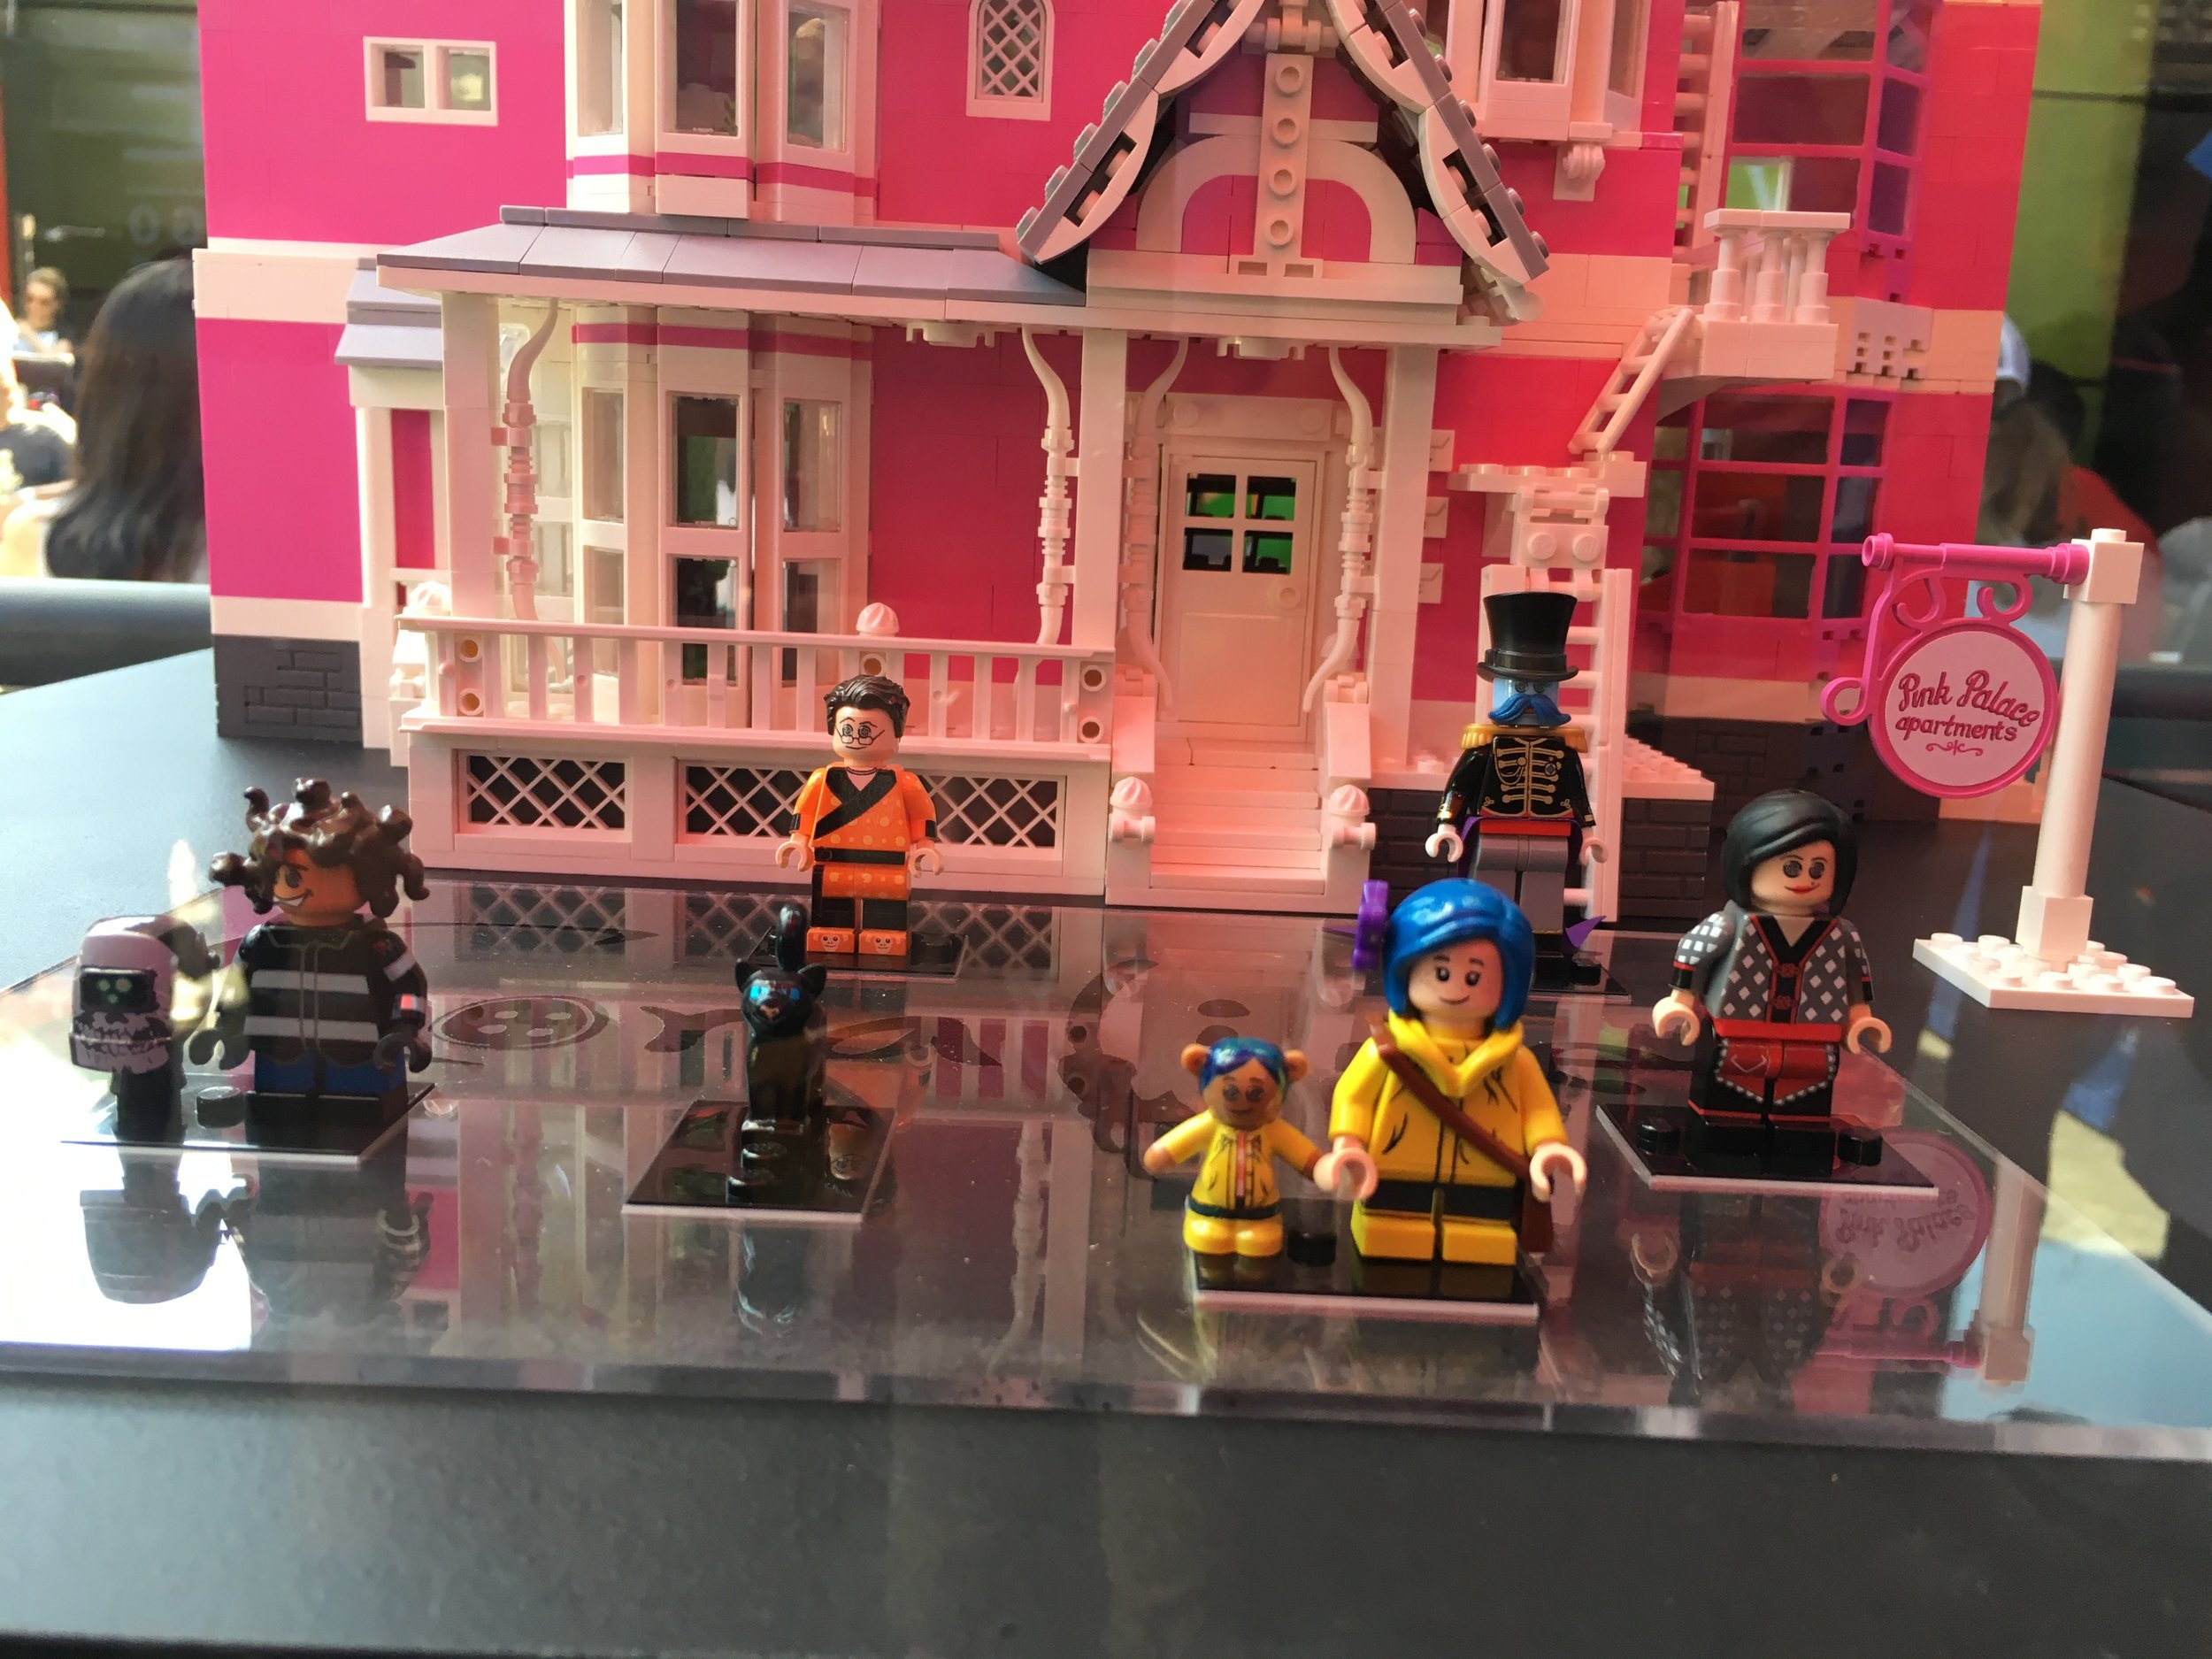 Coraline S Pink Palace Bricknerd Your Place For All Things Lego And The Lego Fan Community